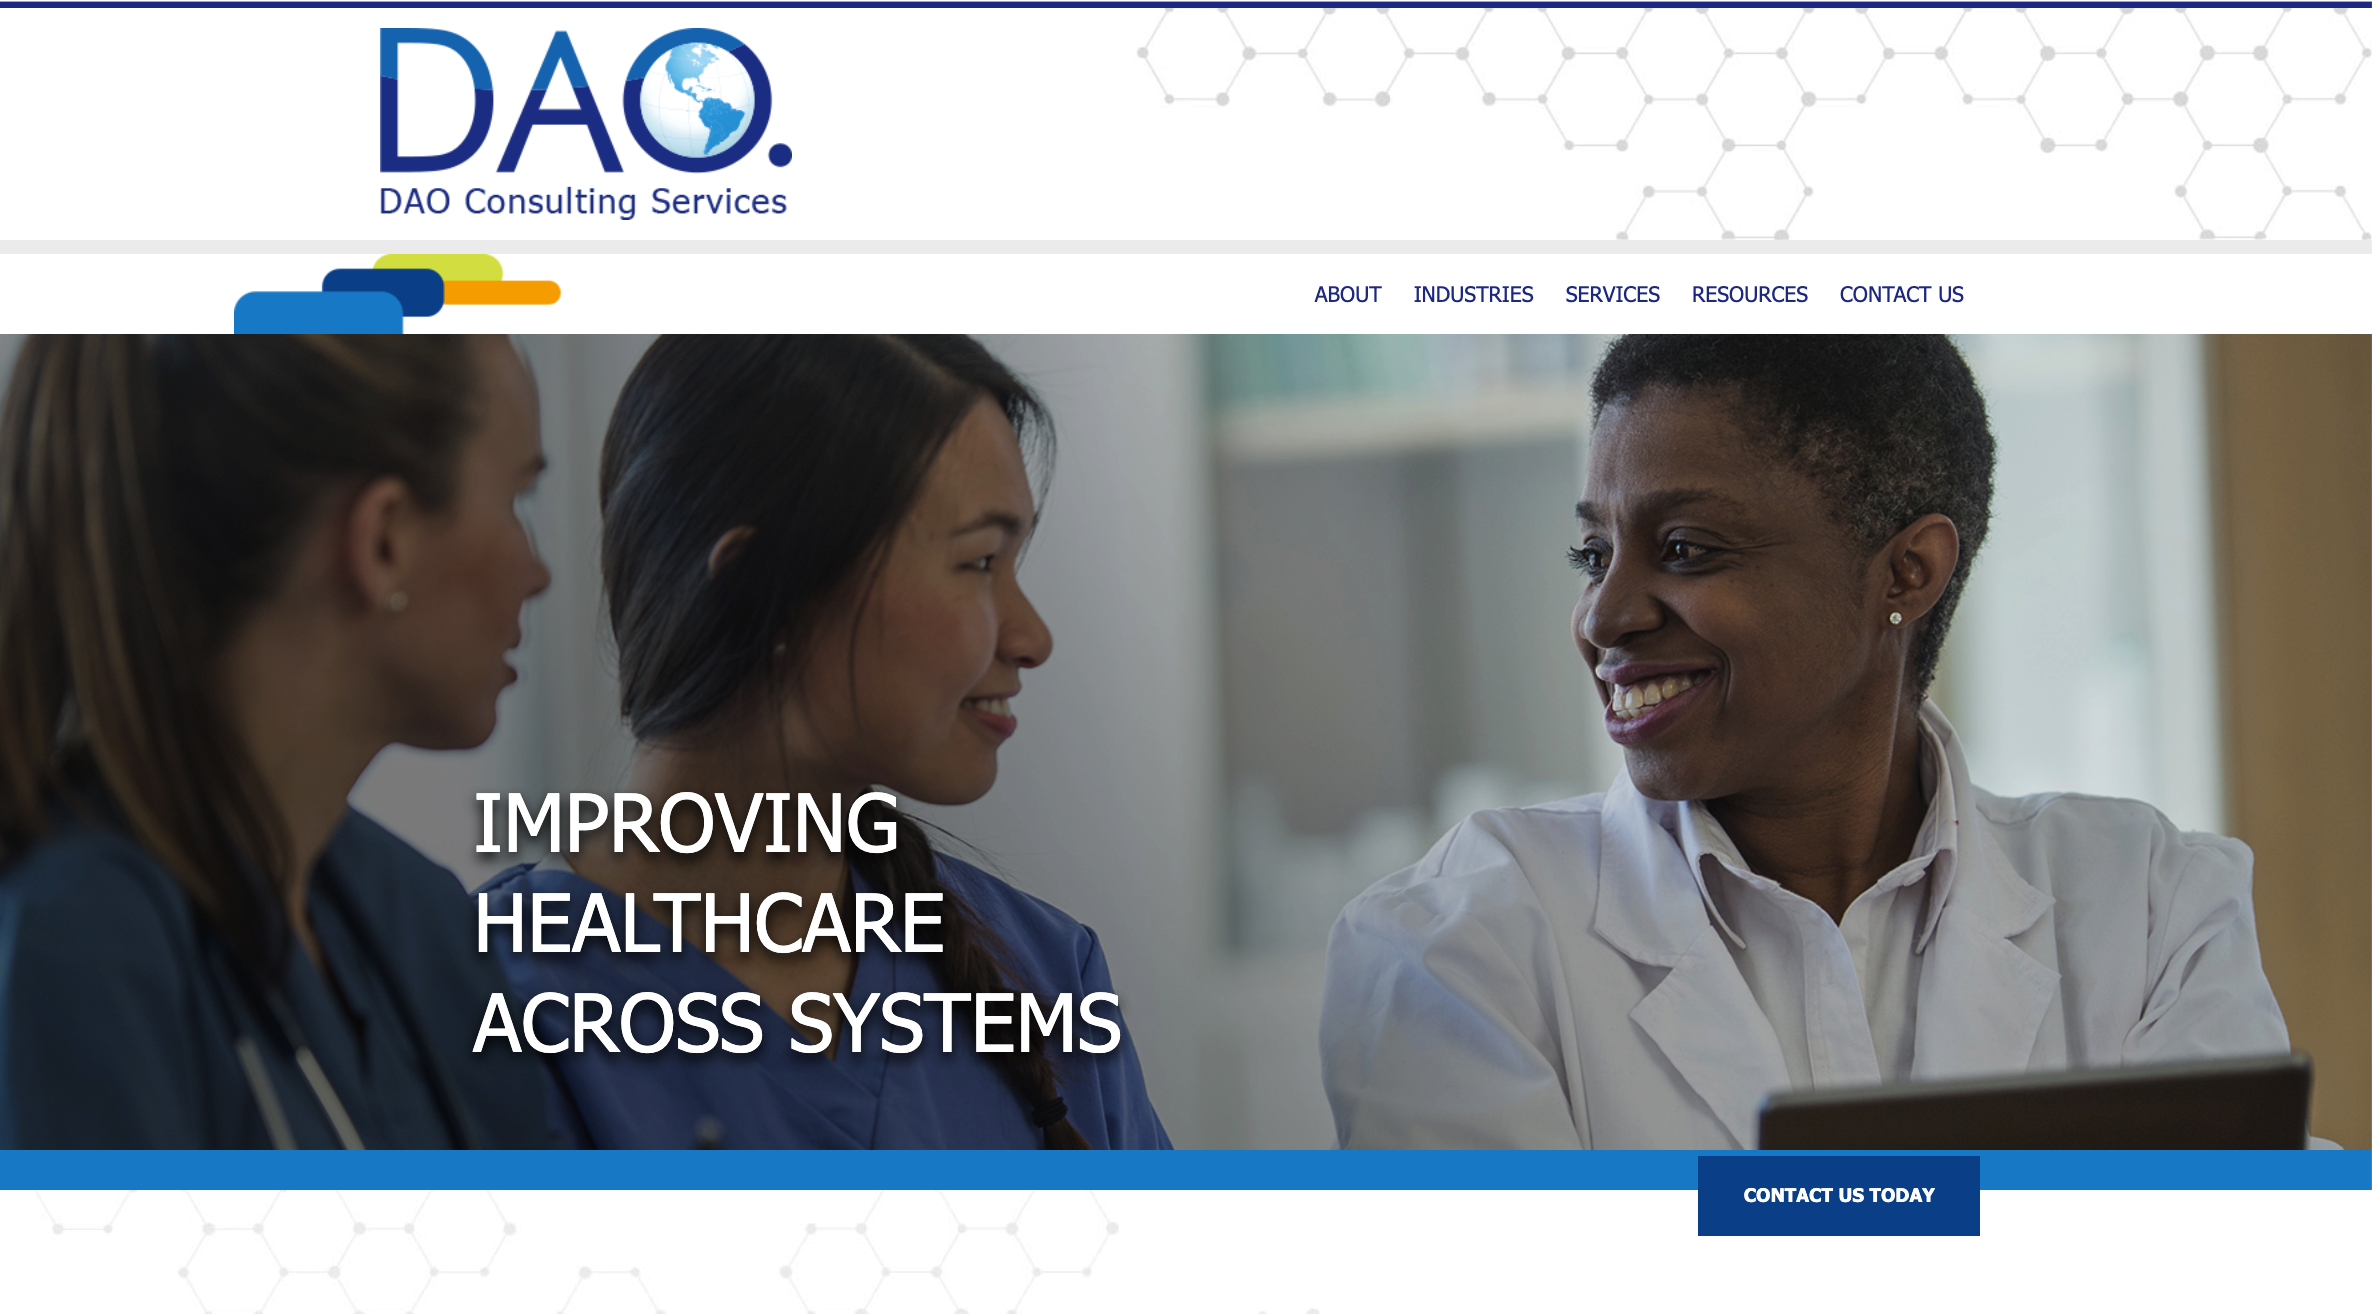 Dao Consulting Services website